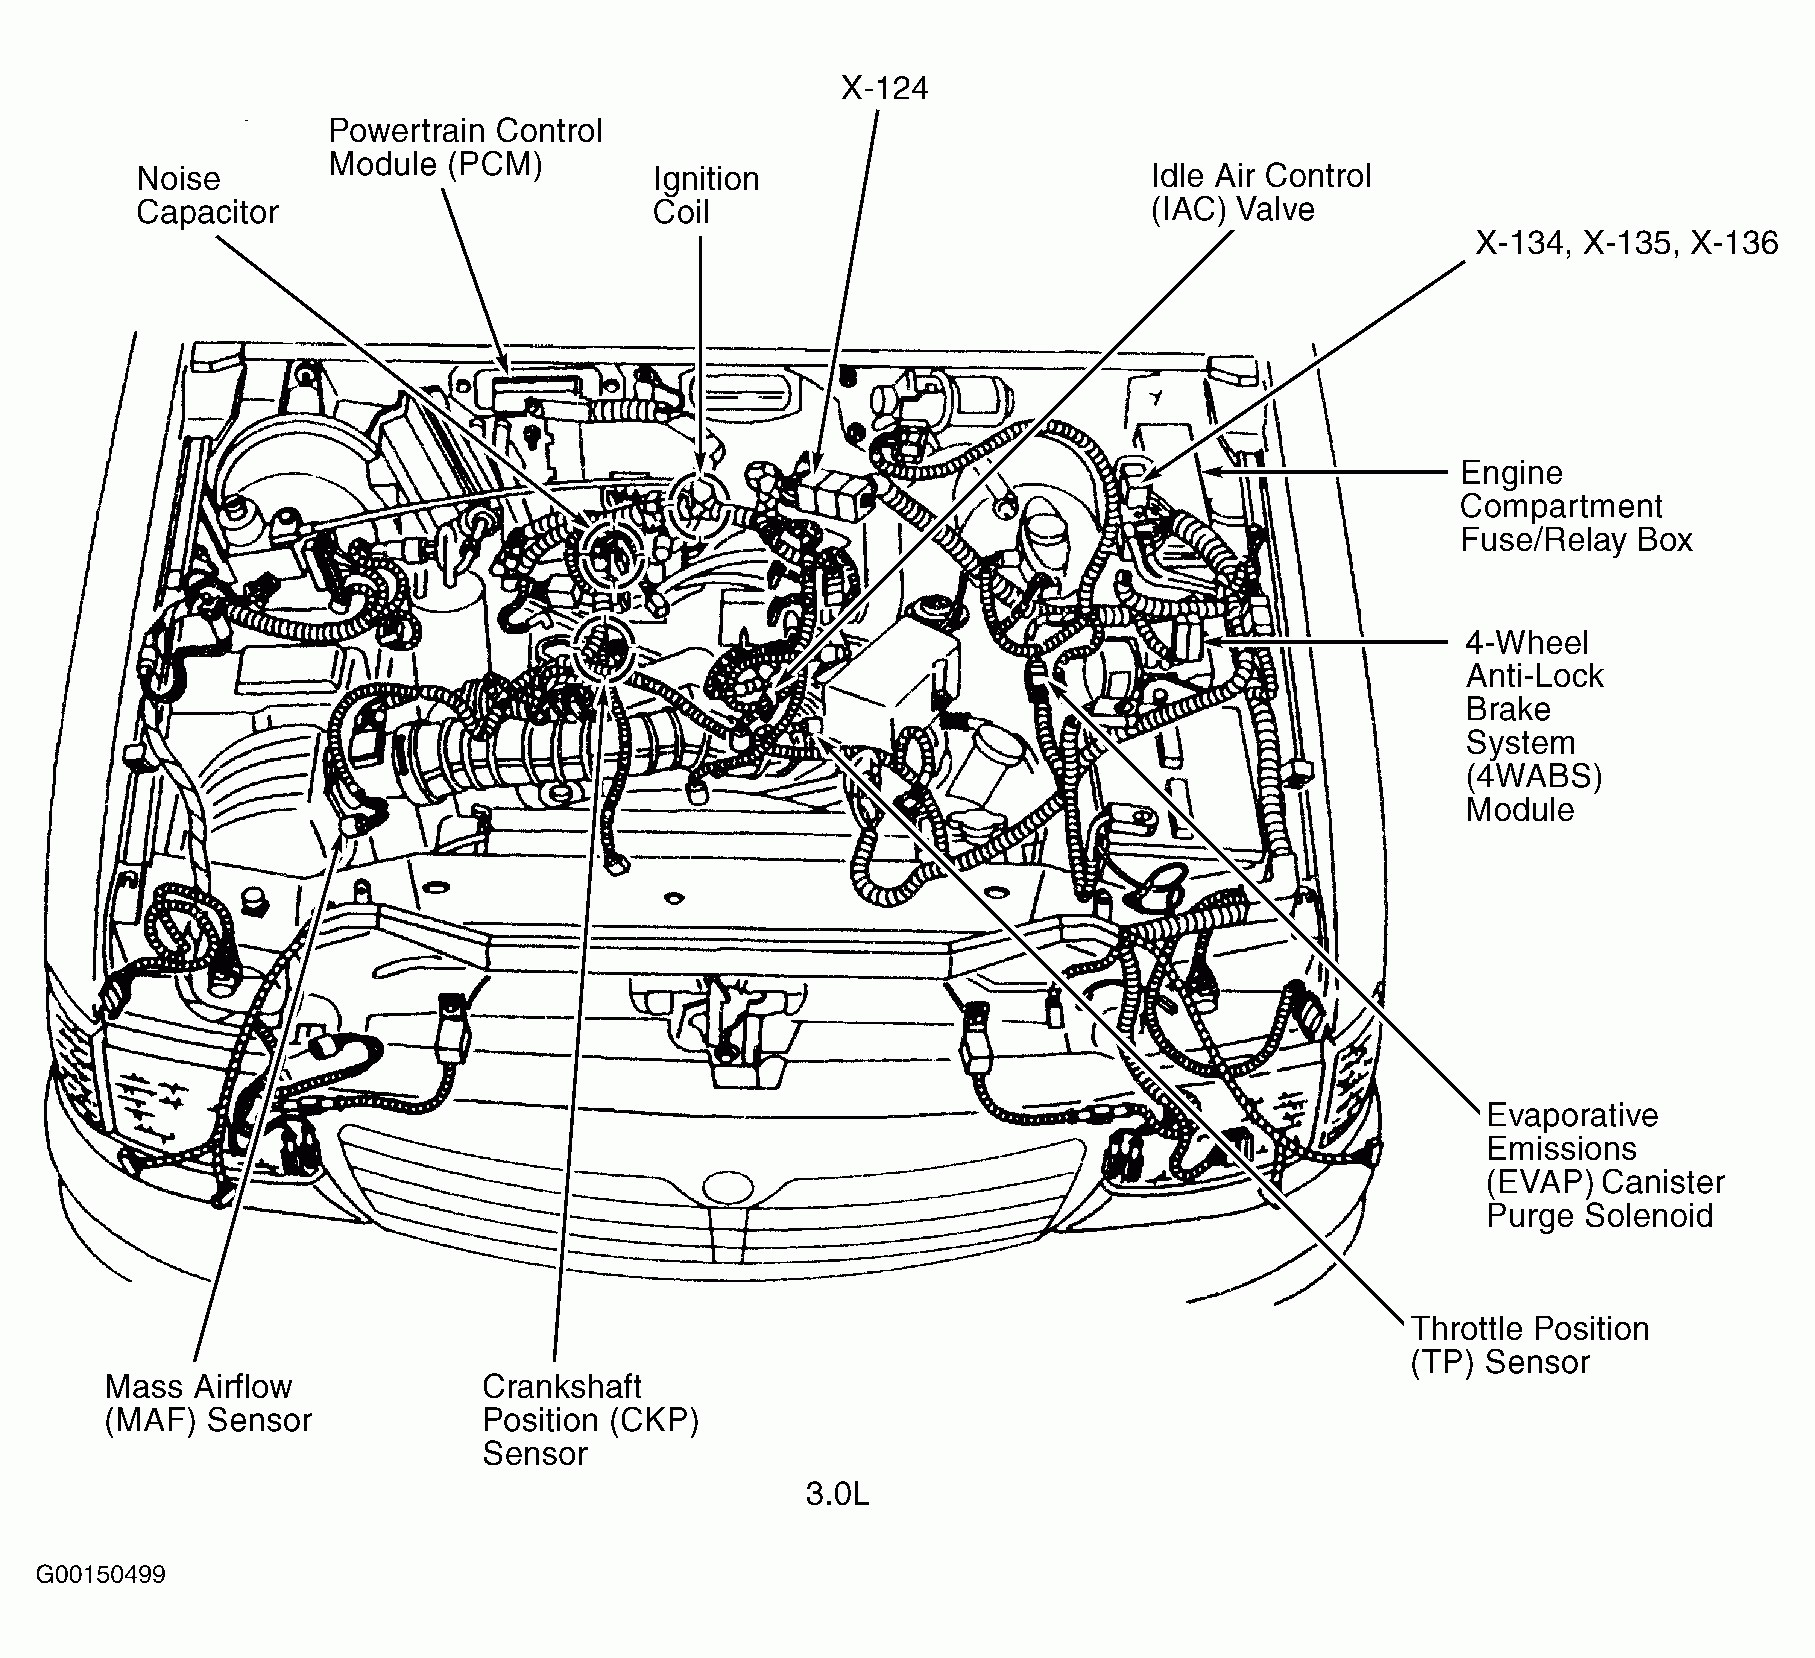 2006 Mini Cooper Engine Diagram Mazda 6 Engine Diagram Data Schematics Wiring Diagram • Of 2006 Mini Cooper Engine Diagram